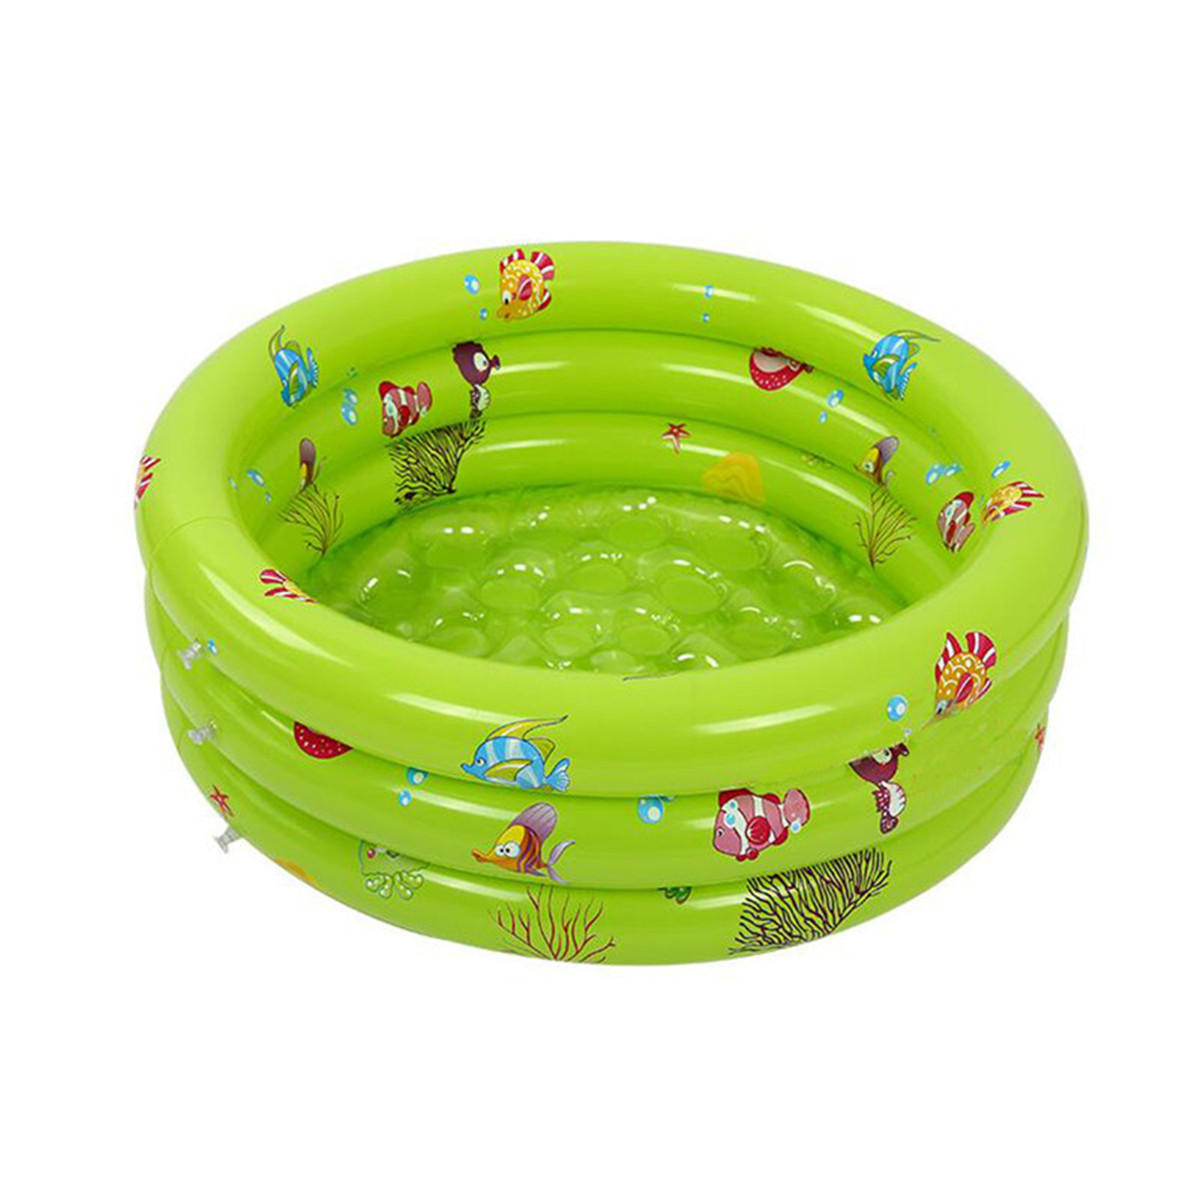 Round Baby Kids Swimming Ocean Ball Pool Inflatable Swimming Pool Toddler Water Fun Bath Toys